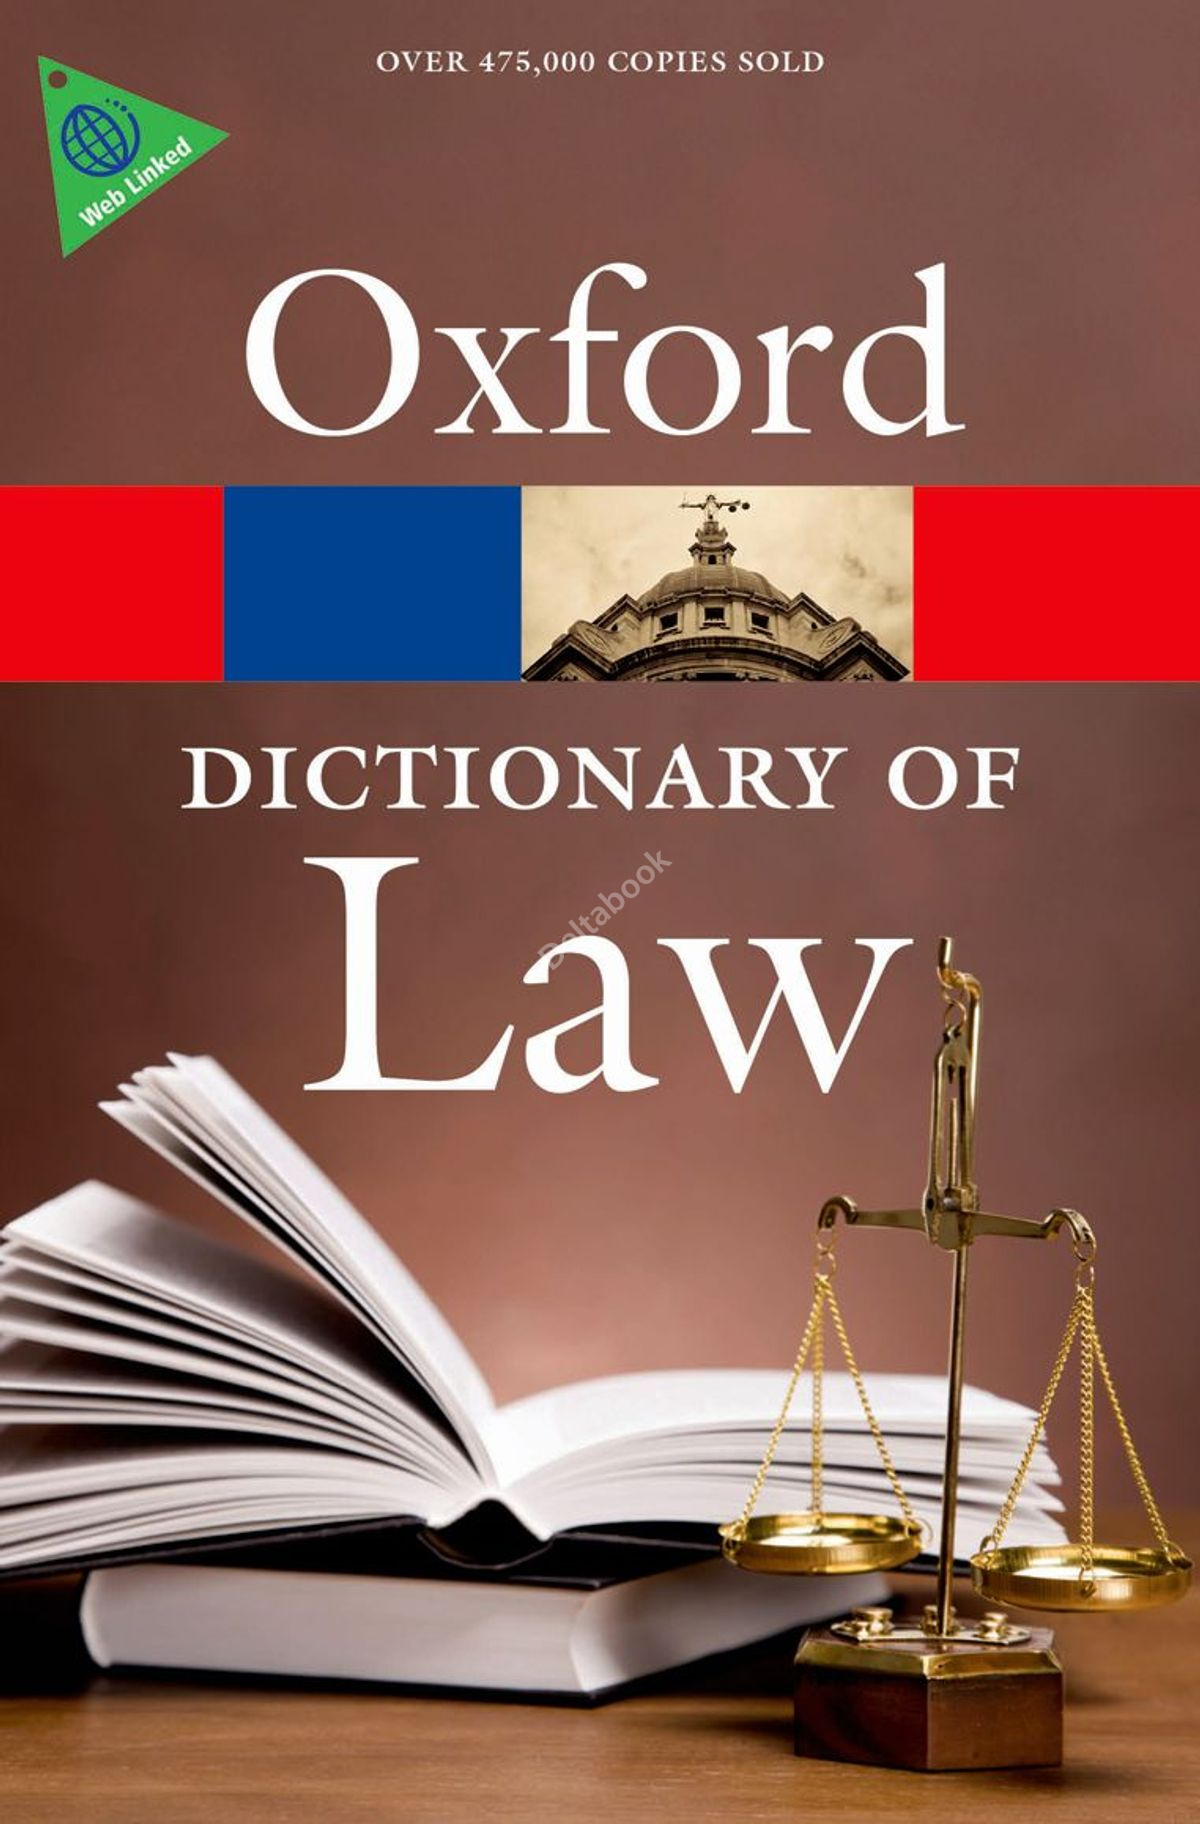 Oxford Dictionary of Law (7th edition)